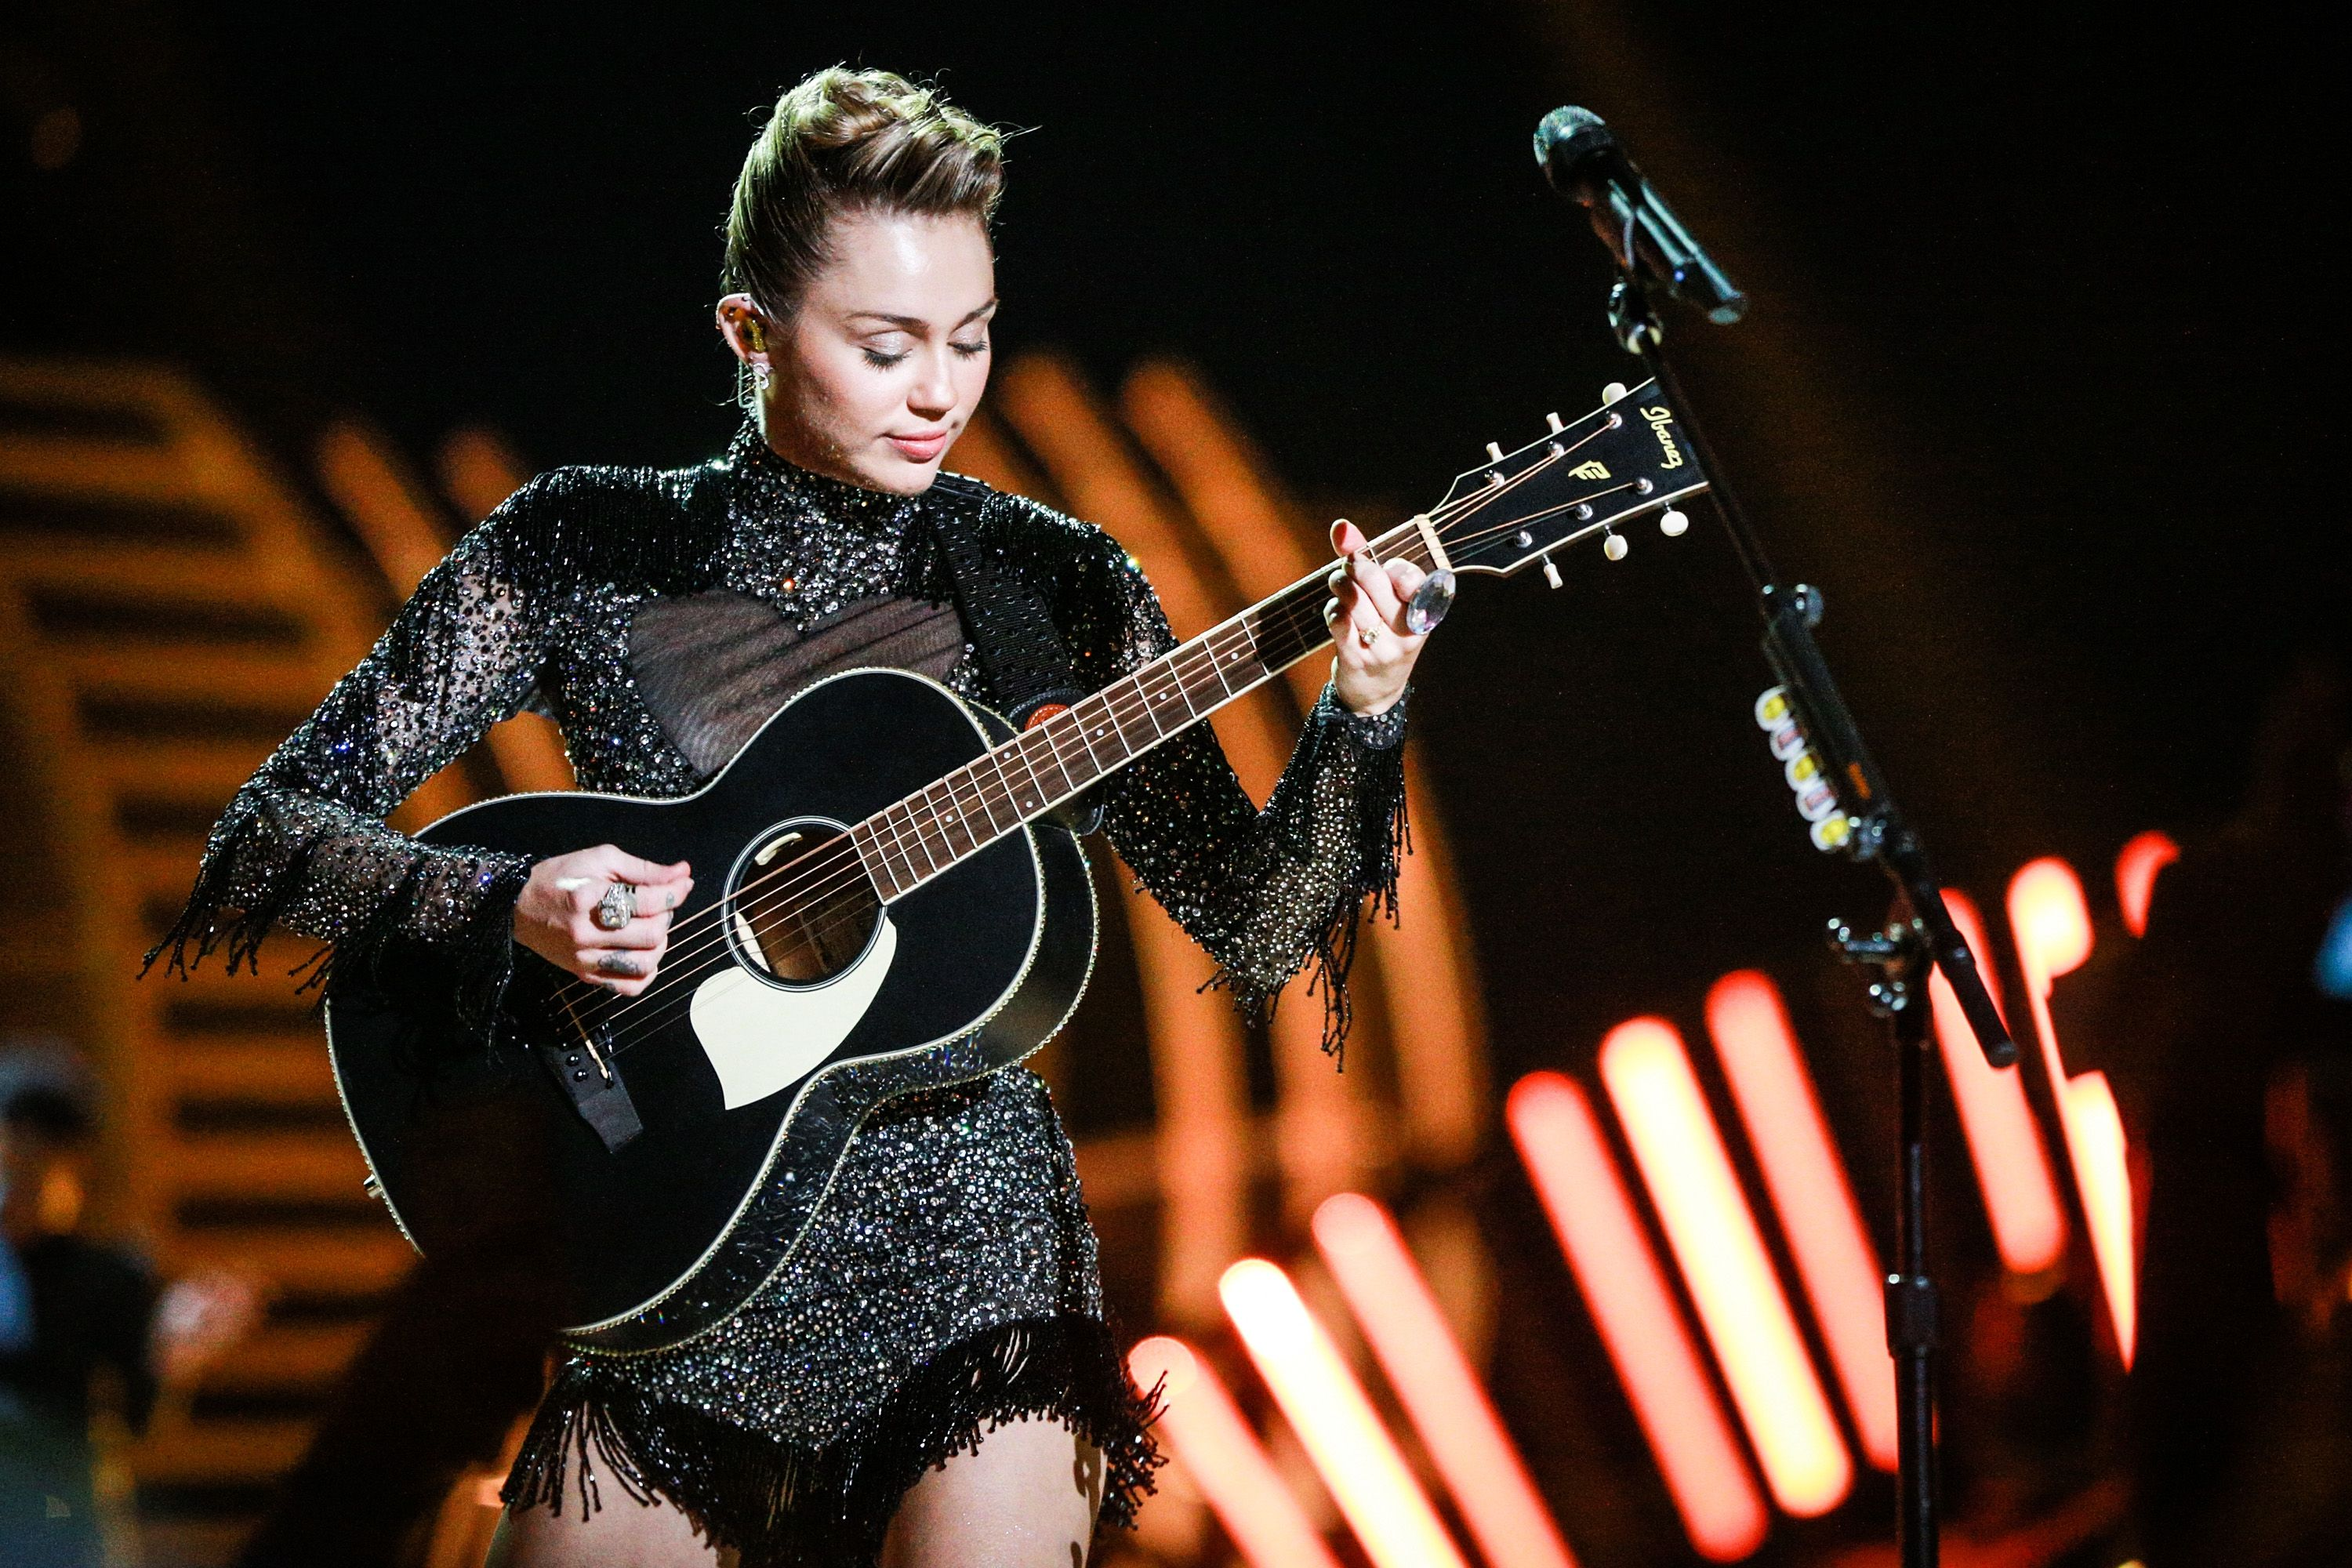 miley cyrus 10 most popular songs